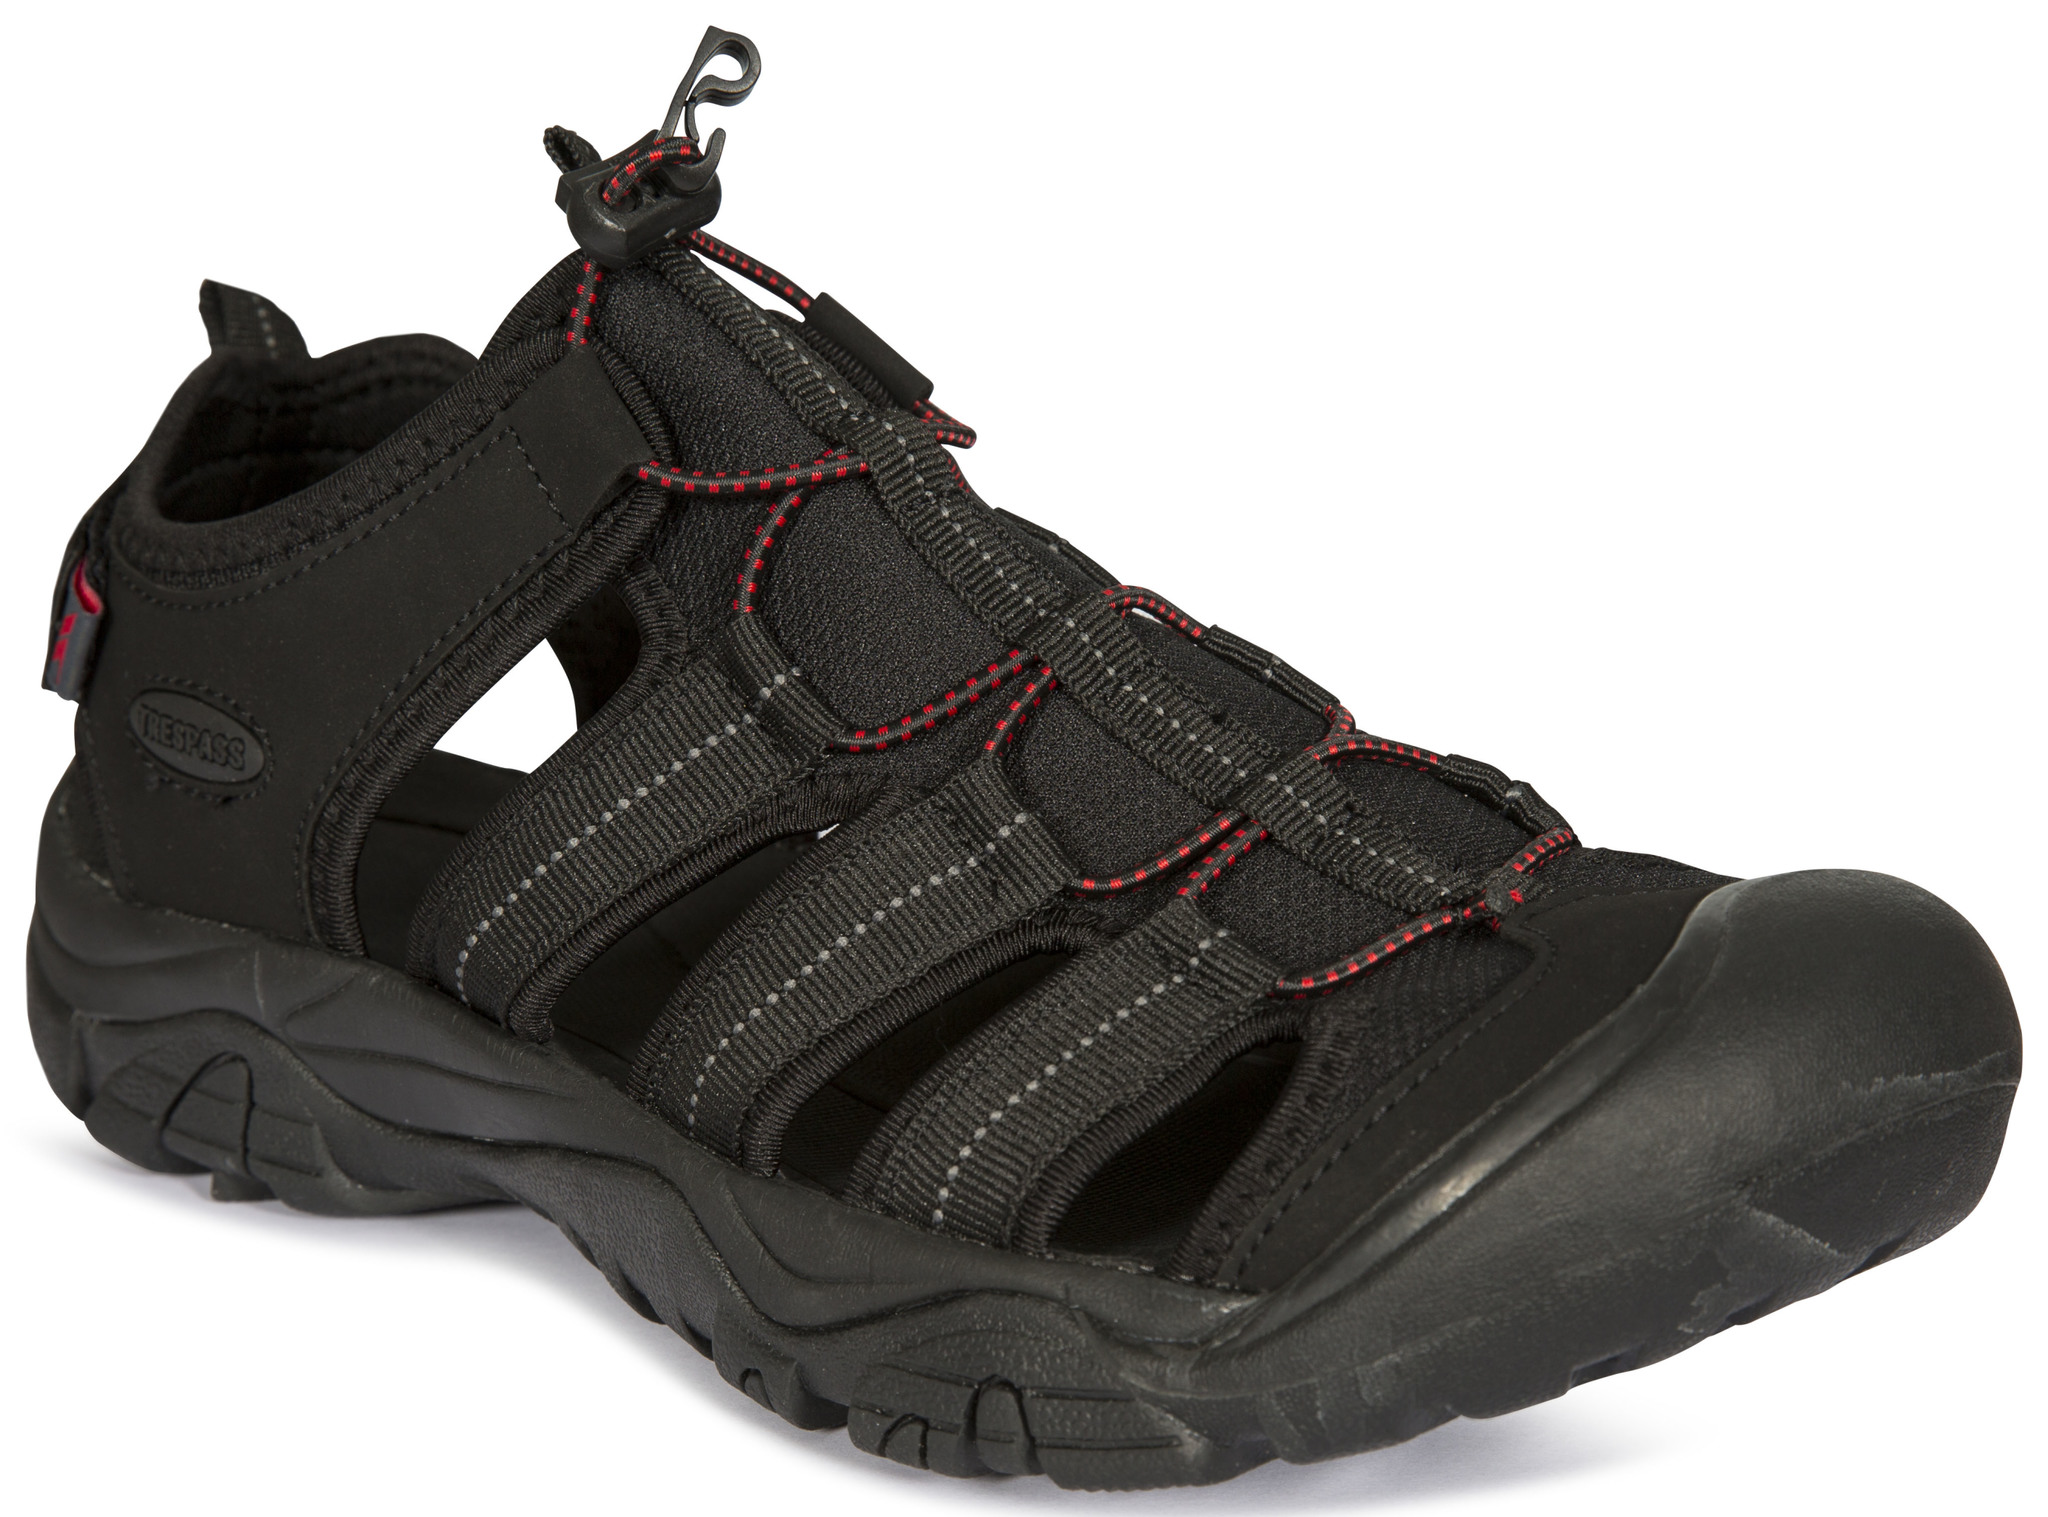 Trespass Torrance - Vandre sandal - Sort | Running shoes